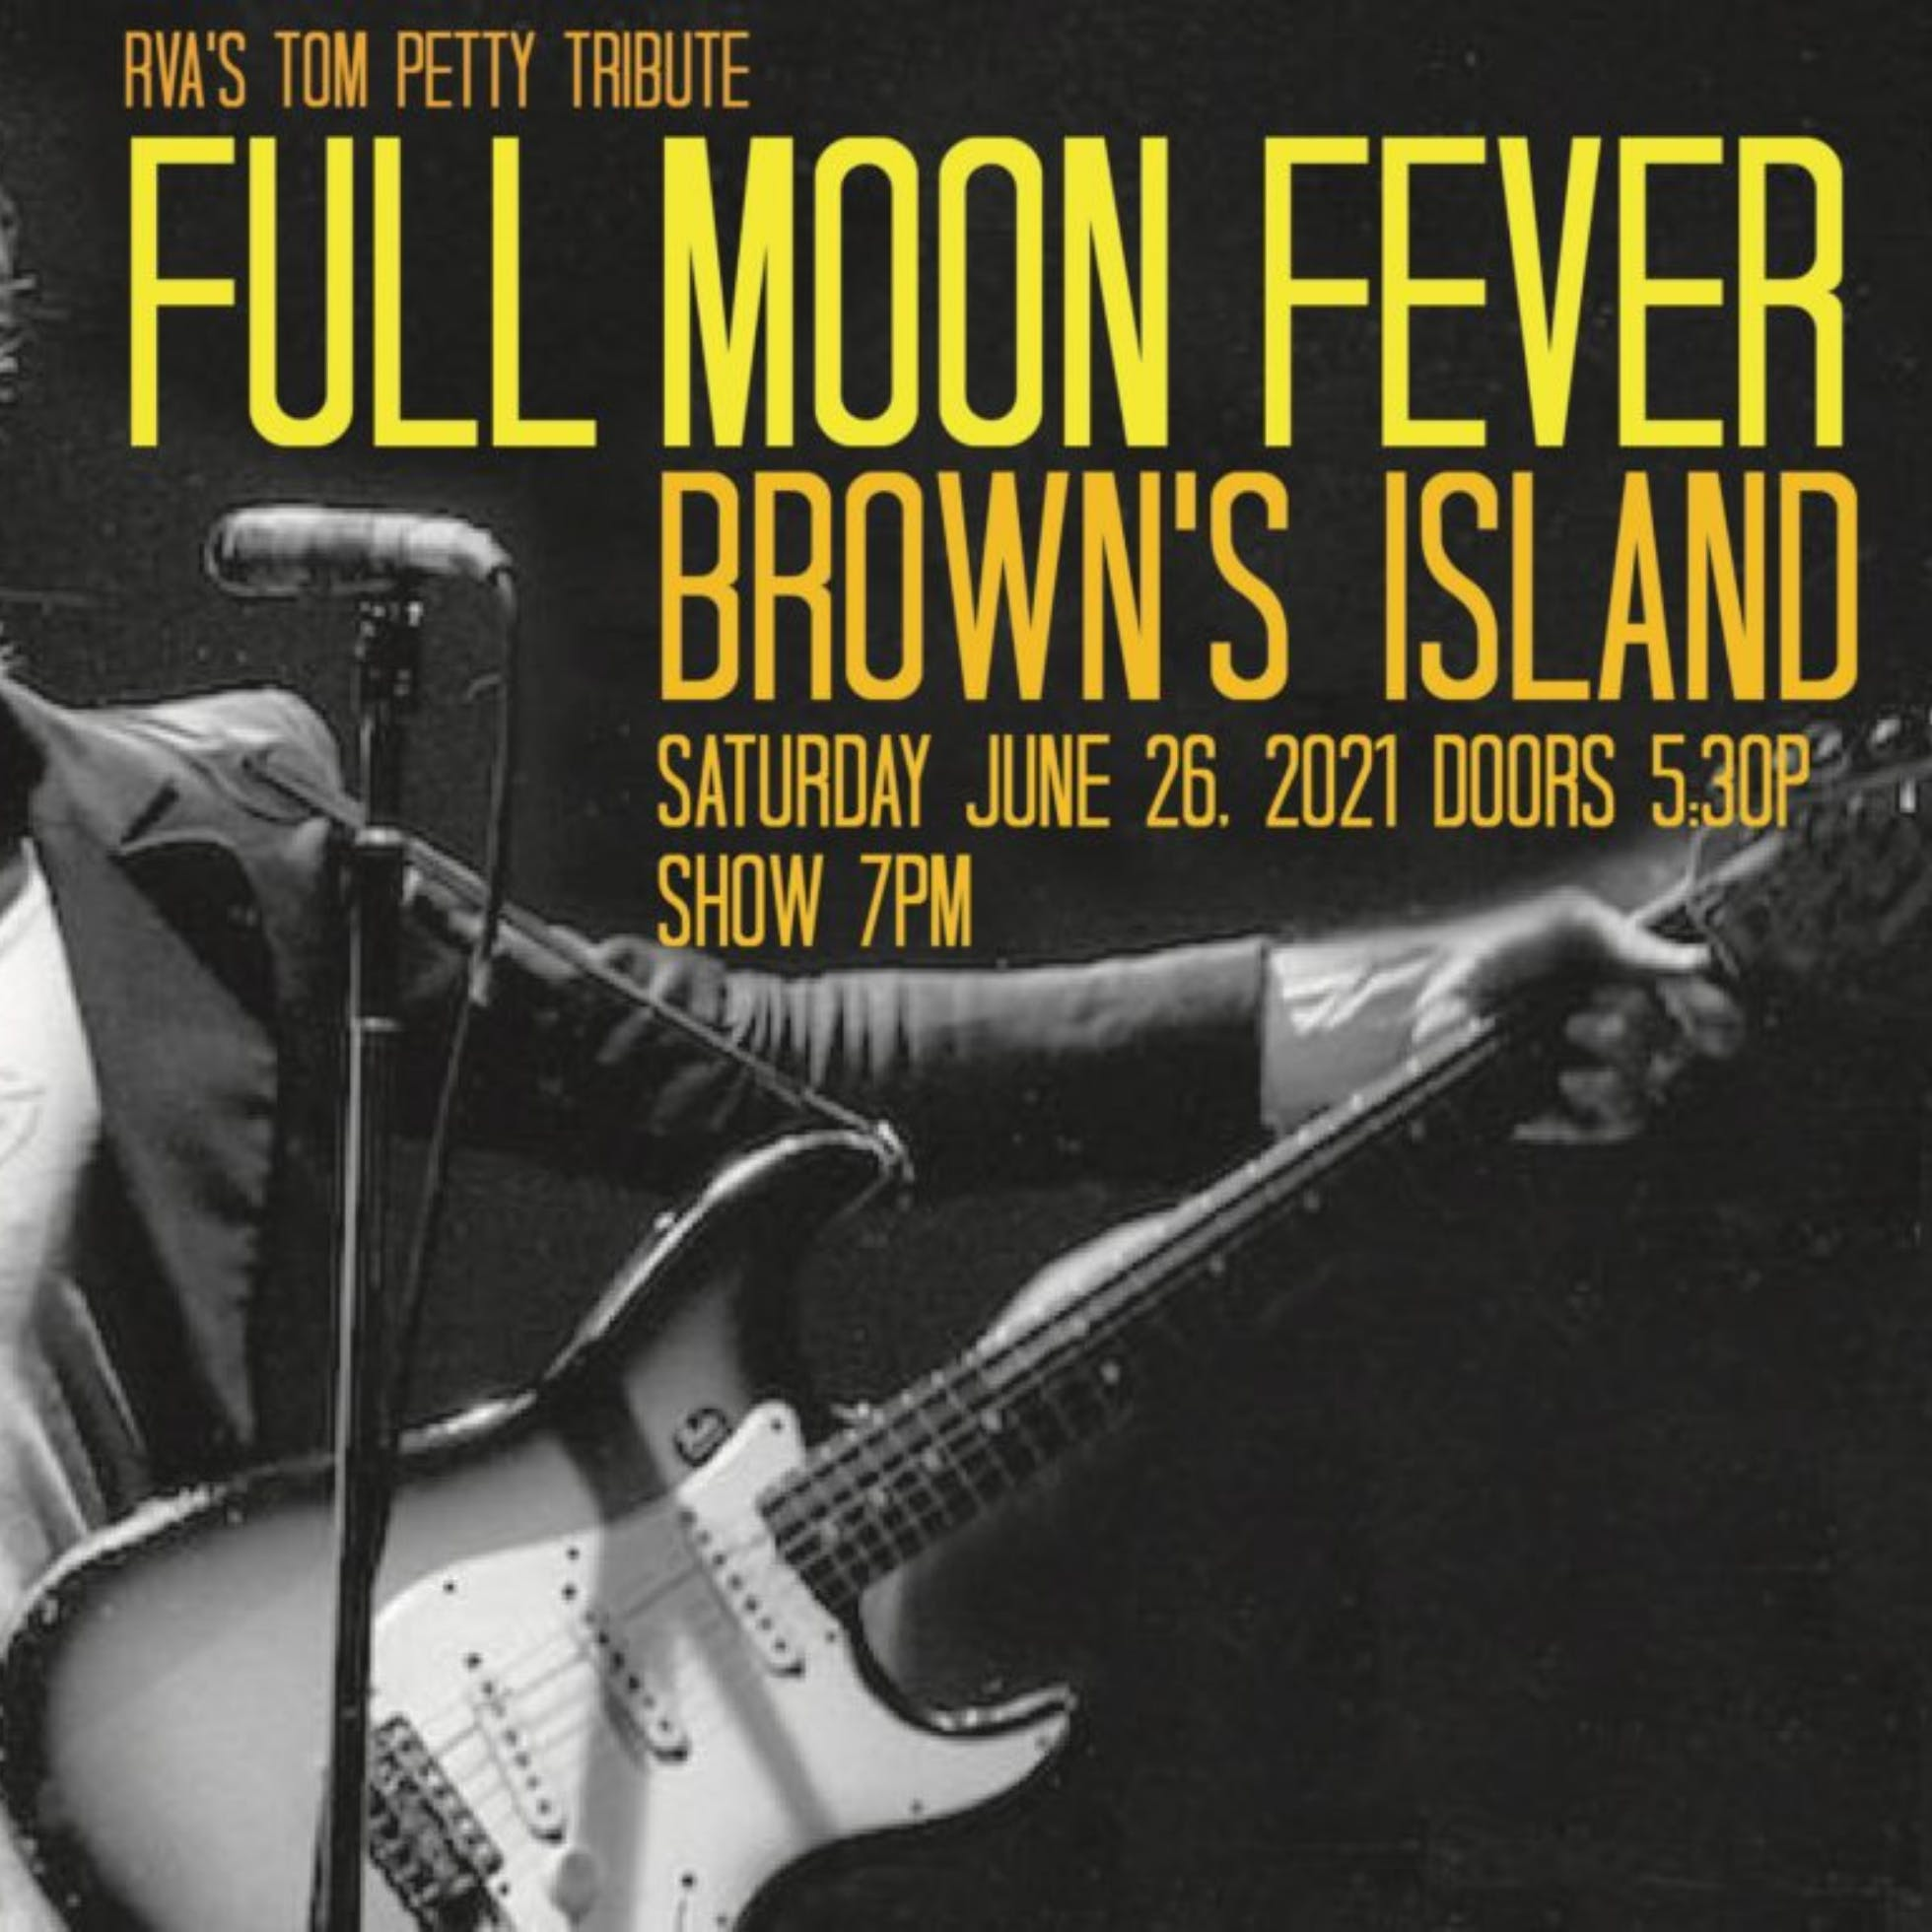 Full Moon Fever: A Tom Petty Tribute at Brown's Island